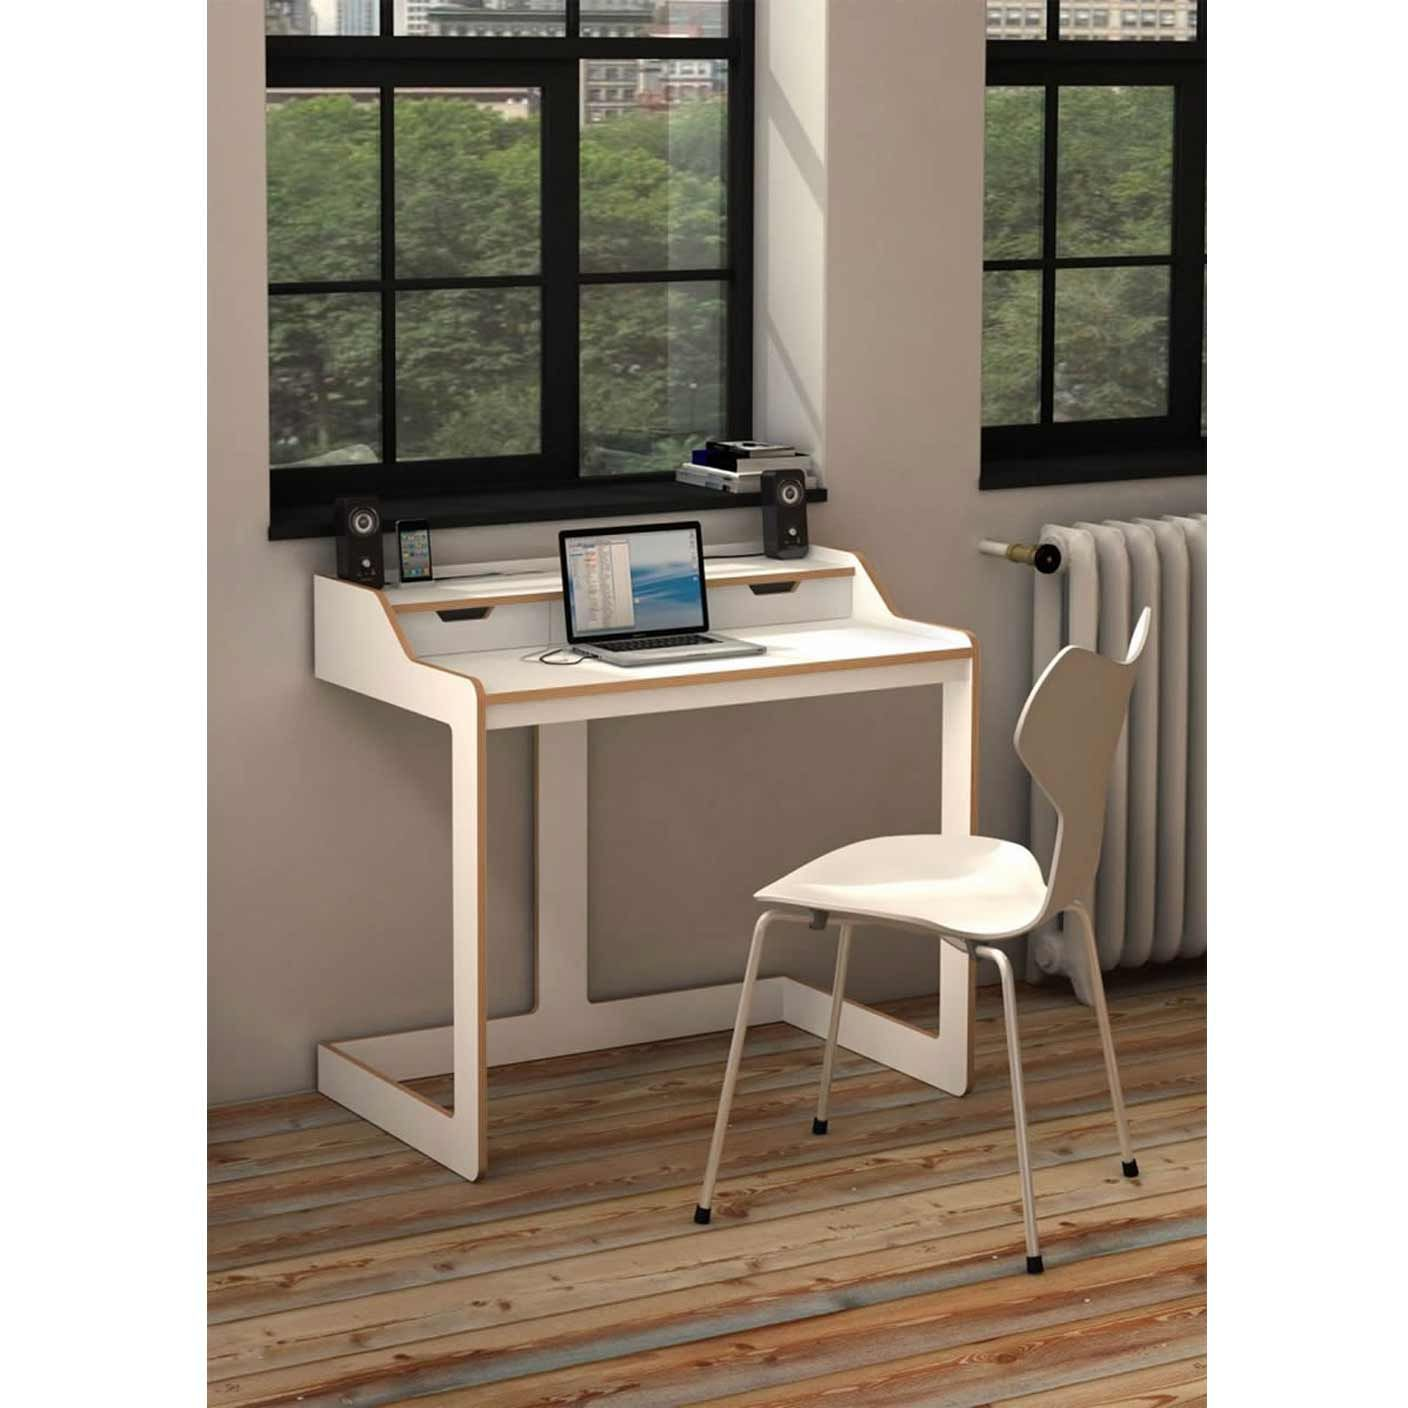 Prime 17 Best Images About Small Office Designs On Pinterest Largest Home Design Picture Inspirations Pitcheantrous